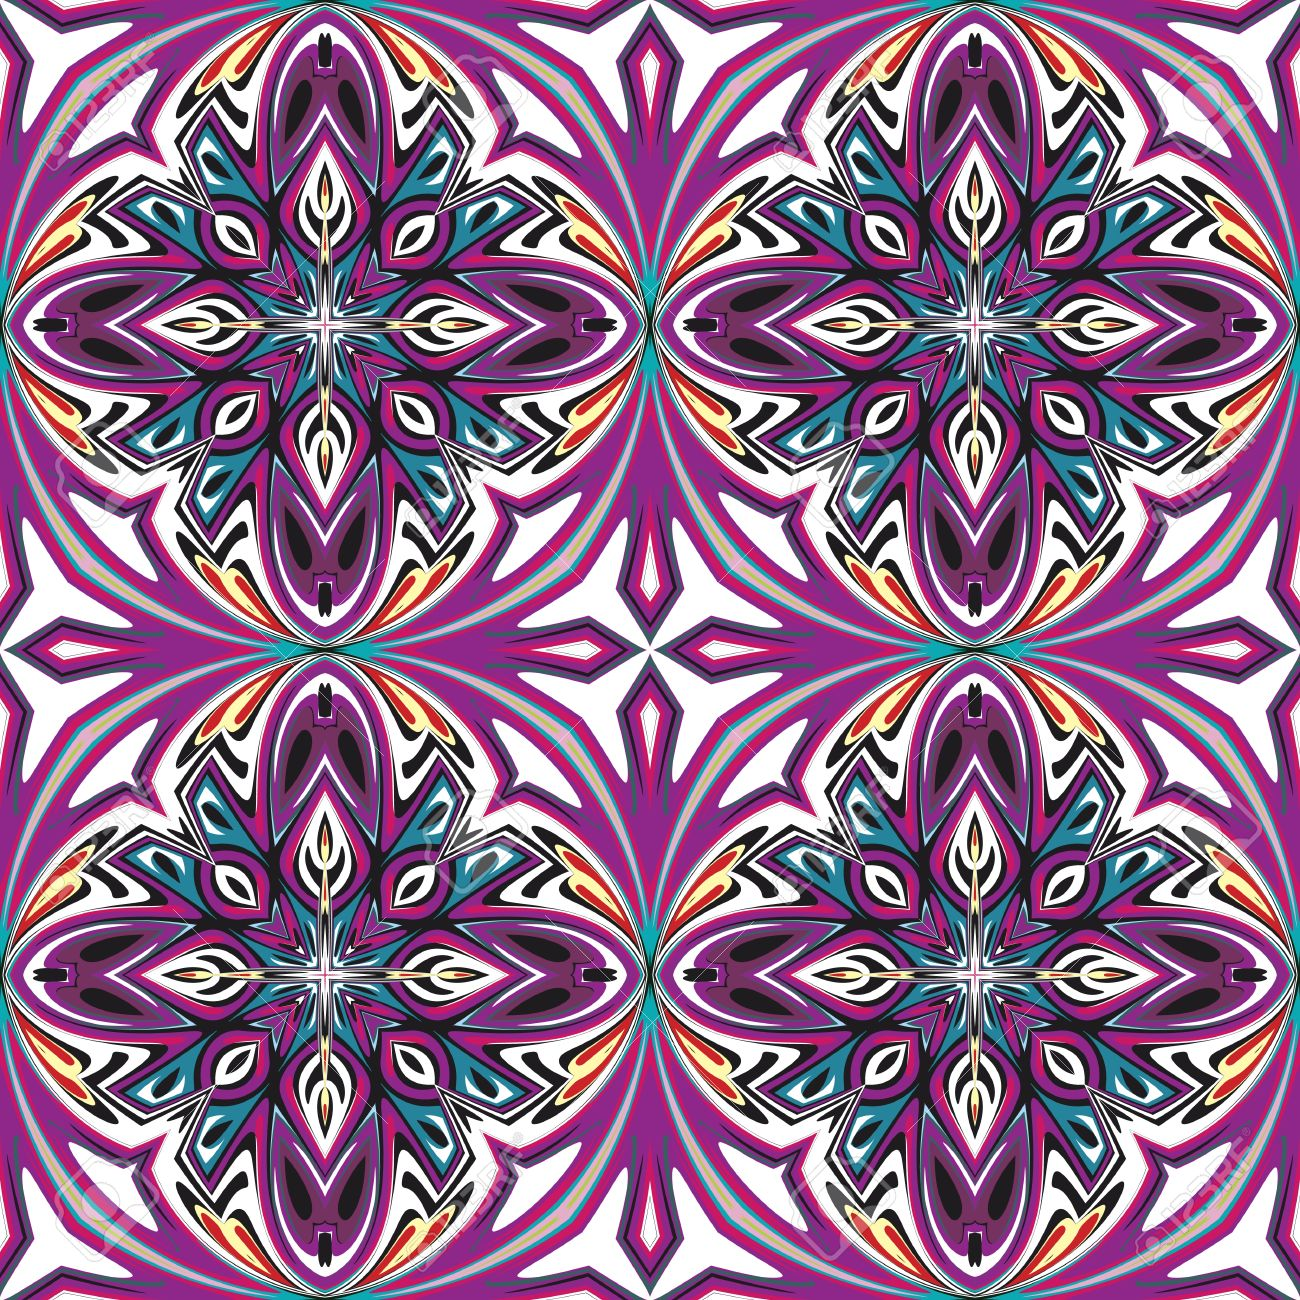 Art Nouveau Tile, Seamless Artistic Vector Pattern With Historic ...